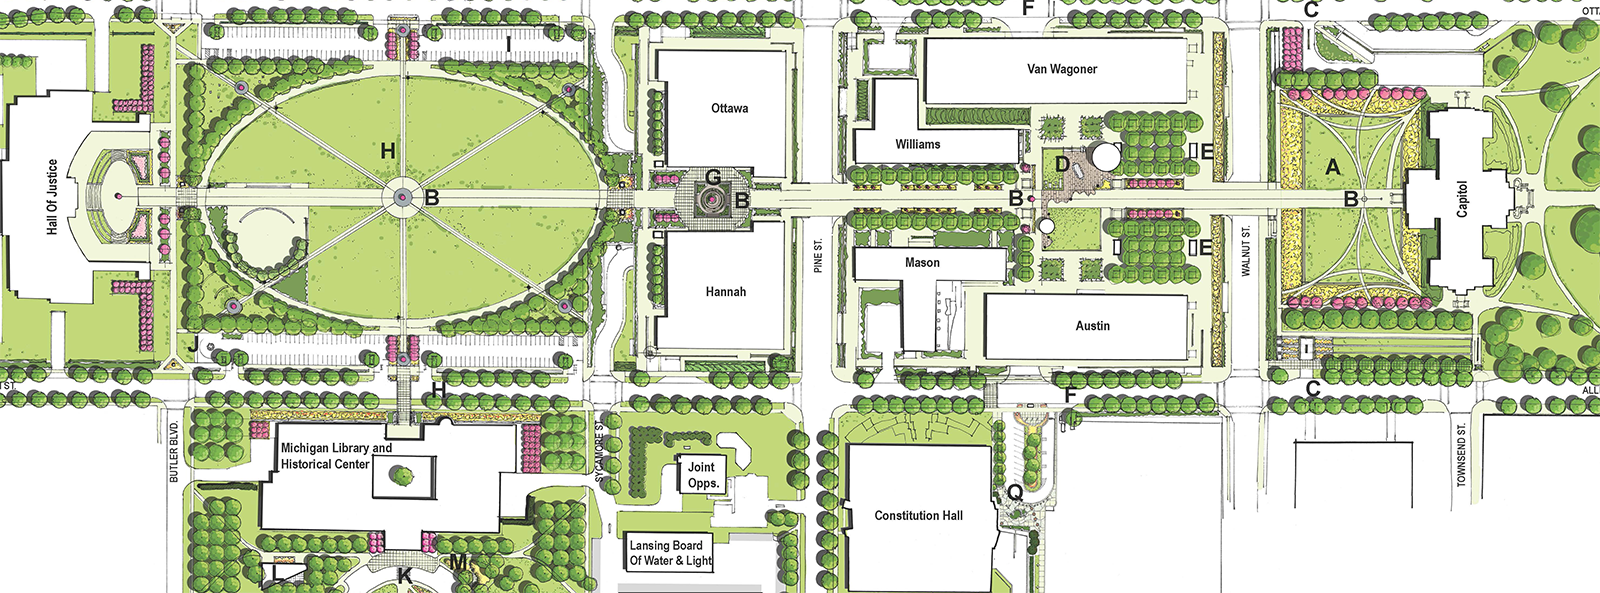 State of Michigan Capitol Complex Master Plan | Nowak & Fraus on wv state capitol map, state of michigan buildings map, flint michigan map, romney building lansing michigan map, virginia state capitol map, capitol building map, pa state capitol map, washington state capitol map, michigan commerce map, grand river michigan map, michigan county map, okemos michigan map, oklahoma state university building map, michigan points of interest, michigan amtrak map, michigan camping map, arizona state capitol map, minnesota state capitol map, michigan tourism map, oklahoma state capitol map,